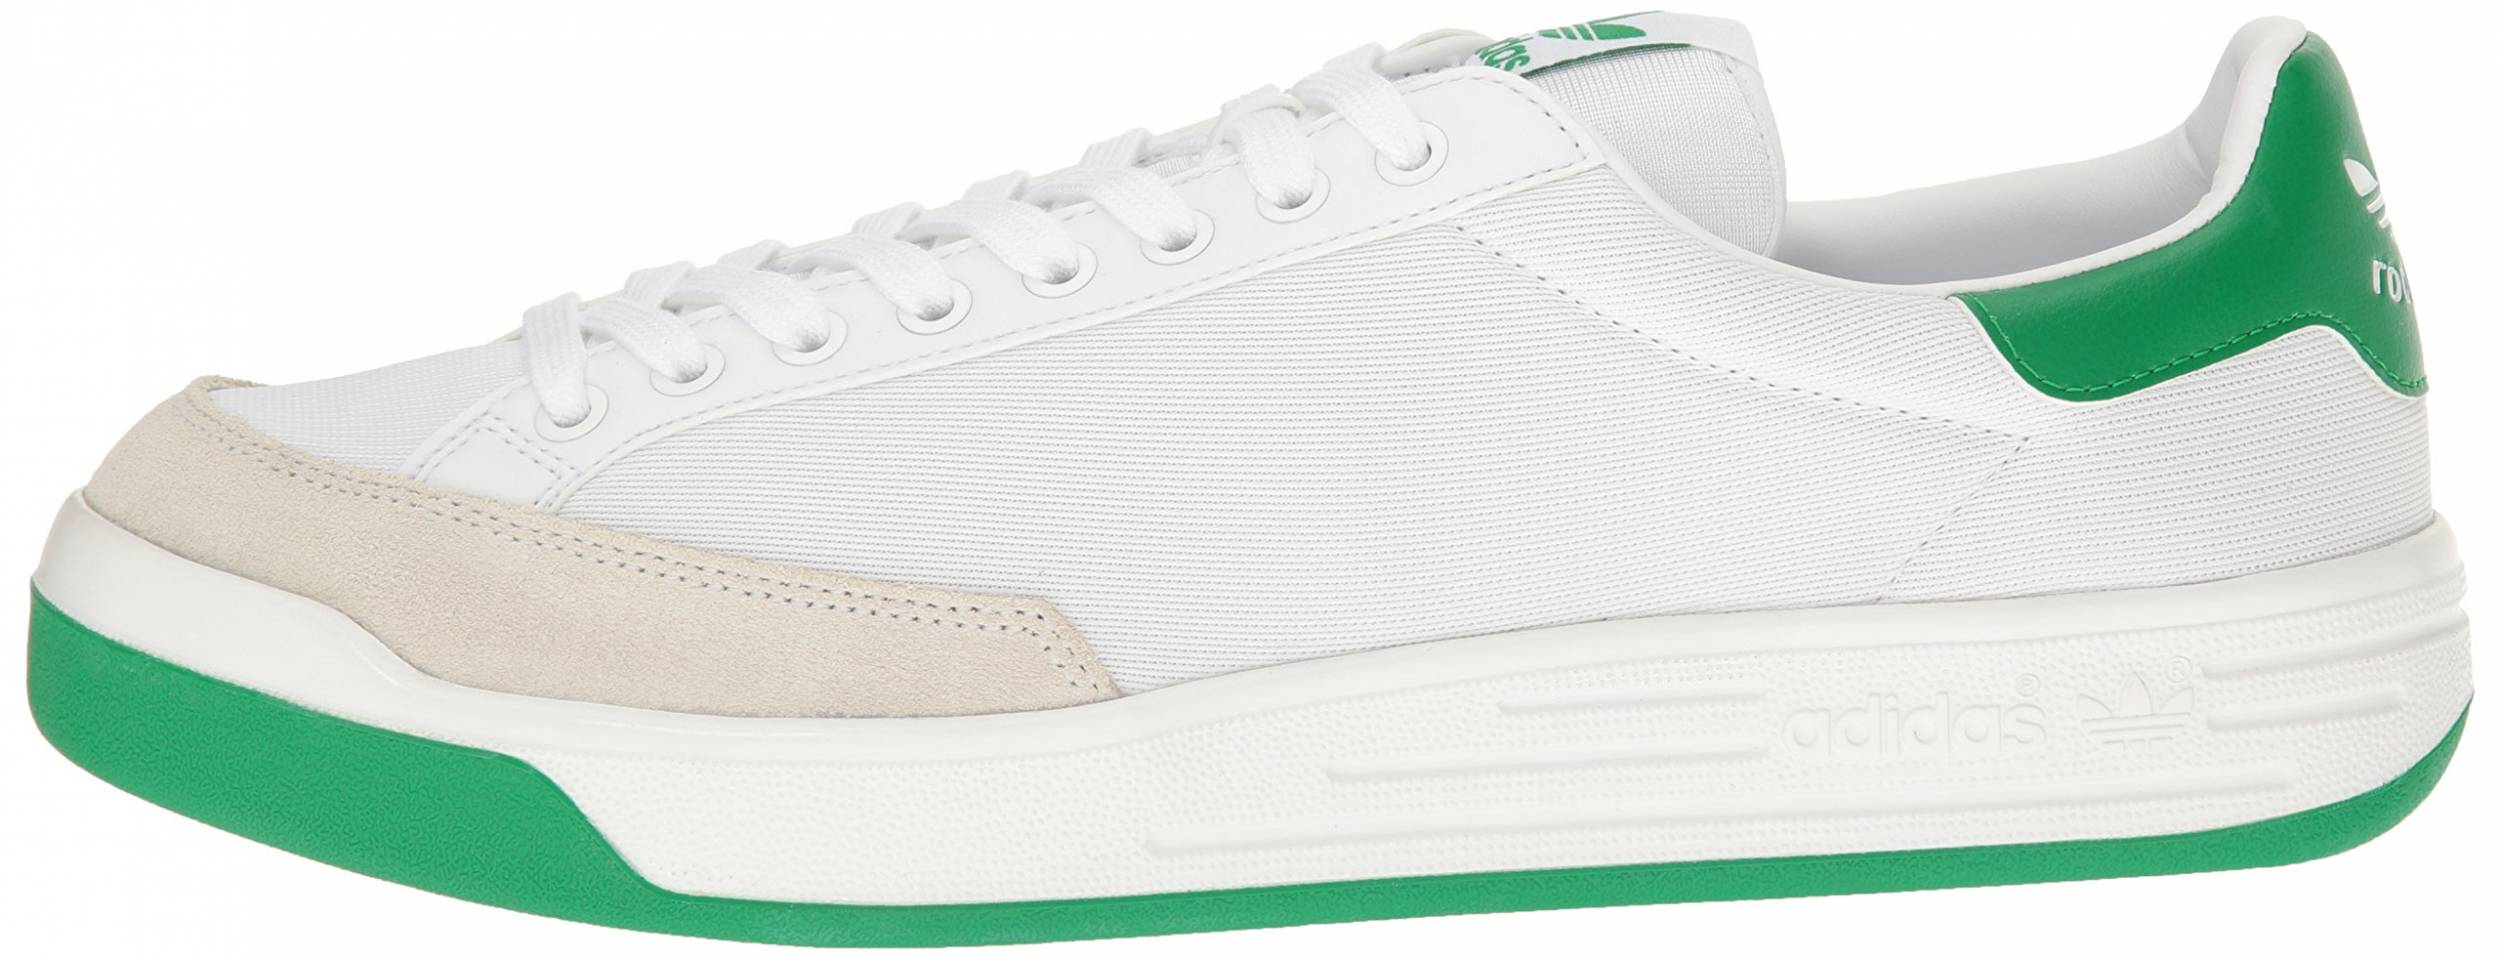 85 + Review of Adidas Rod Laver Super